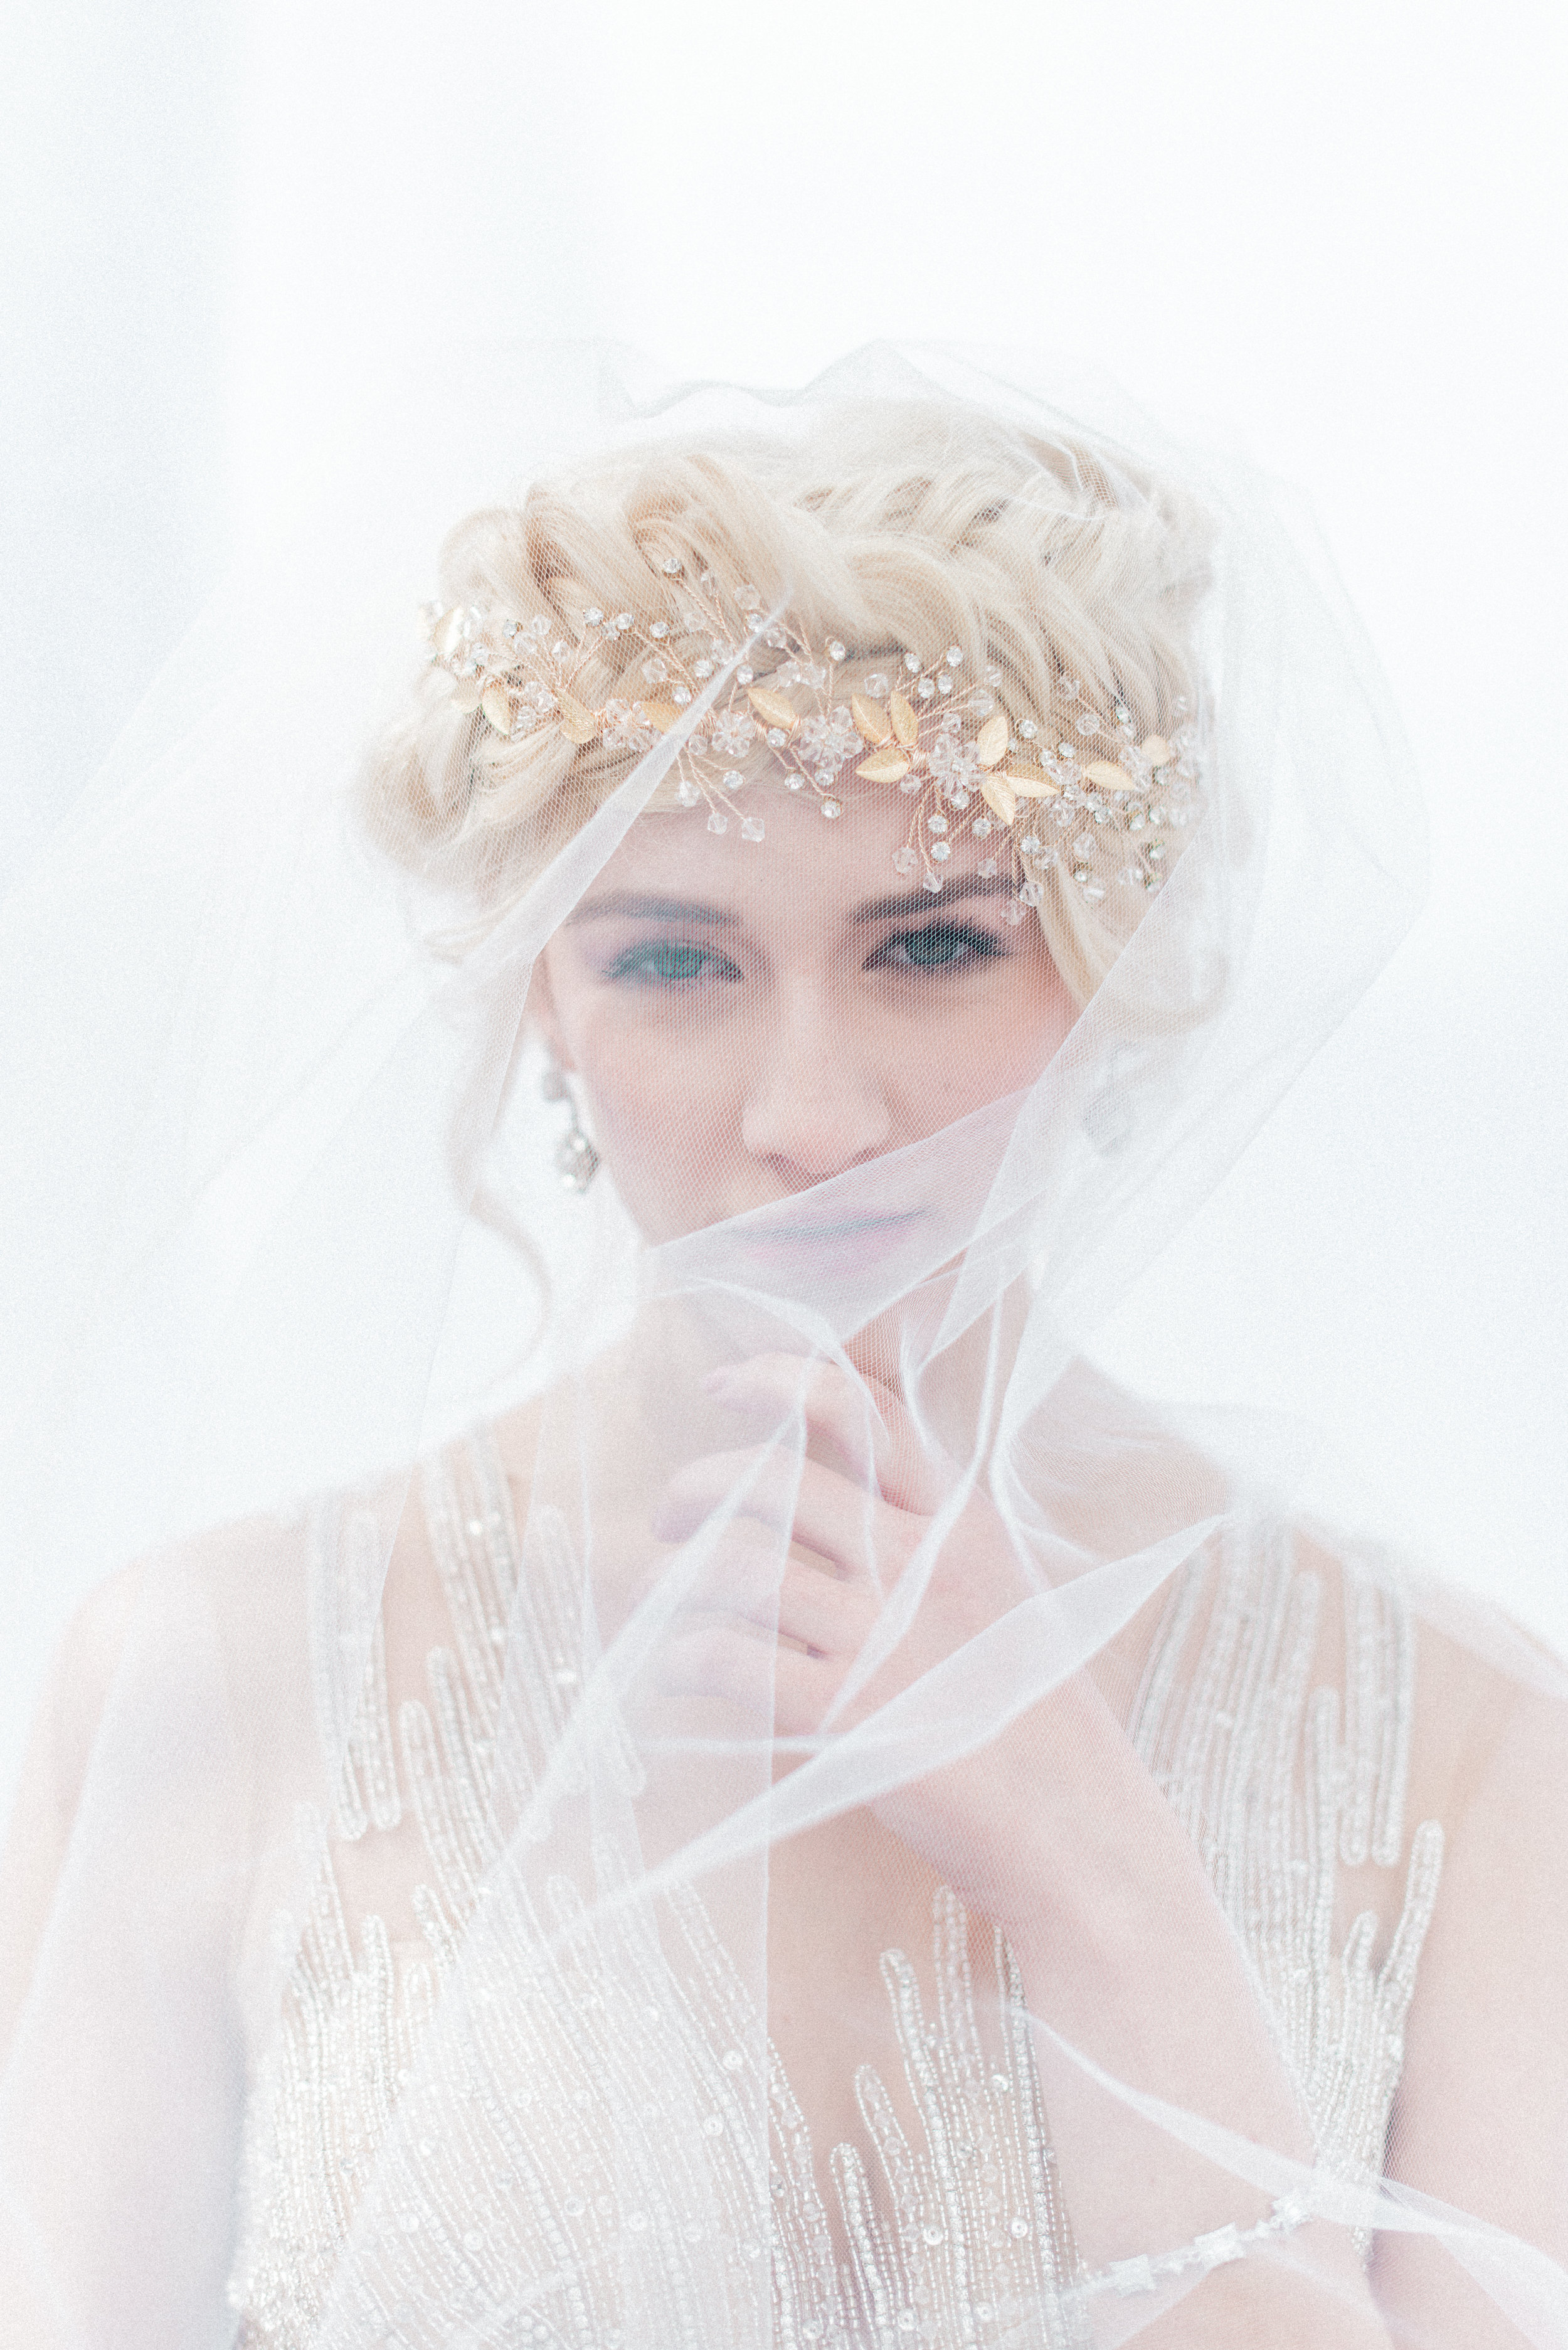 Photo Cred: Laura Kelly , Style shoot by Elise Schmitz - Toast Events